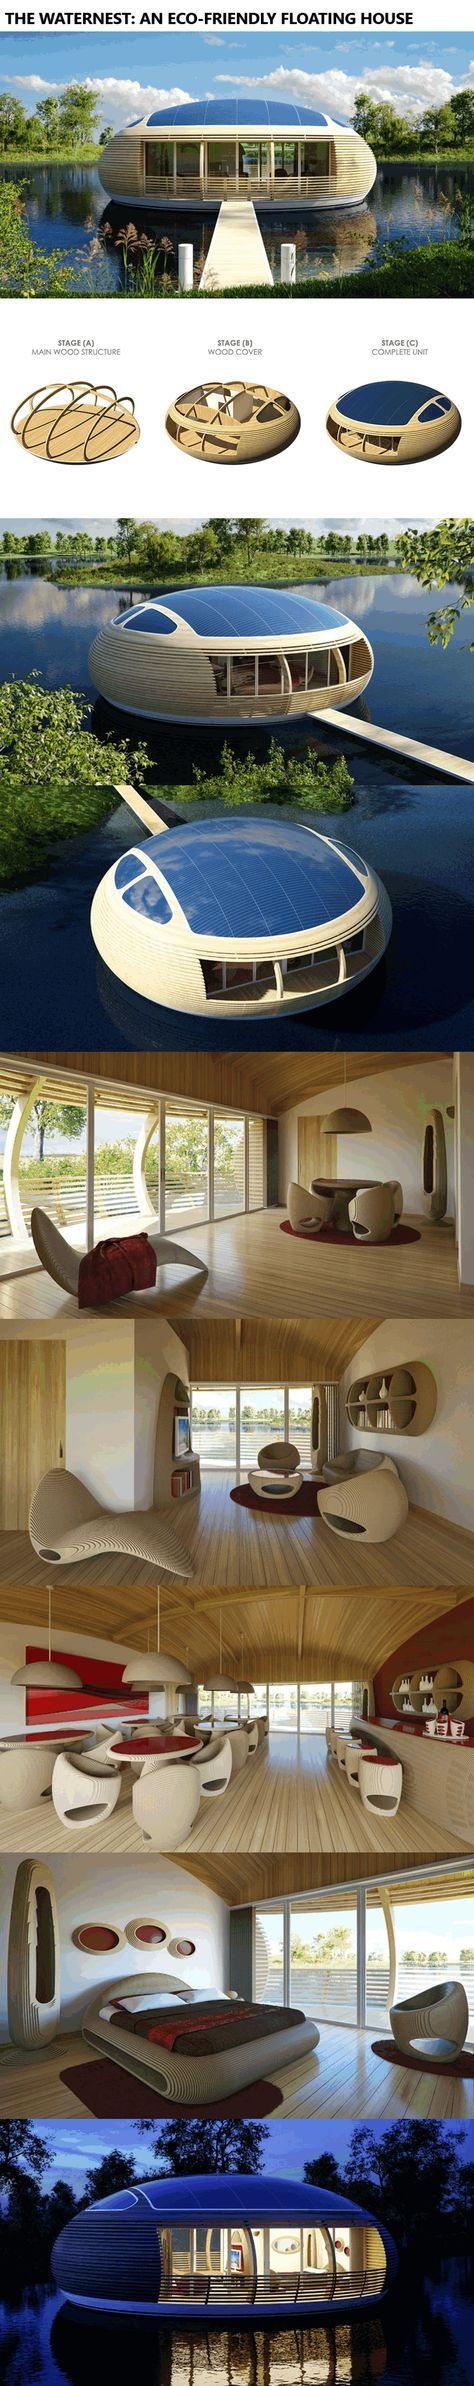 Interior design challenge eco home - Waternest Eco Friendly Floating House Designed By Giancarlo Zema For Ecoflolife Made Entirely Of Recycled Laminated Timber And Aluminium Hull